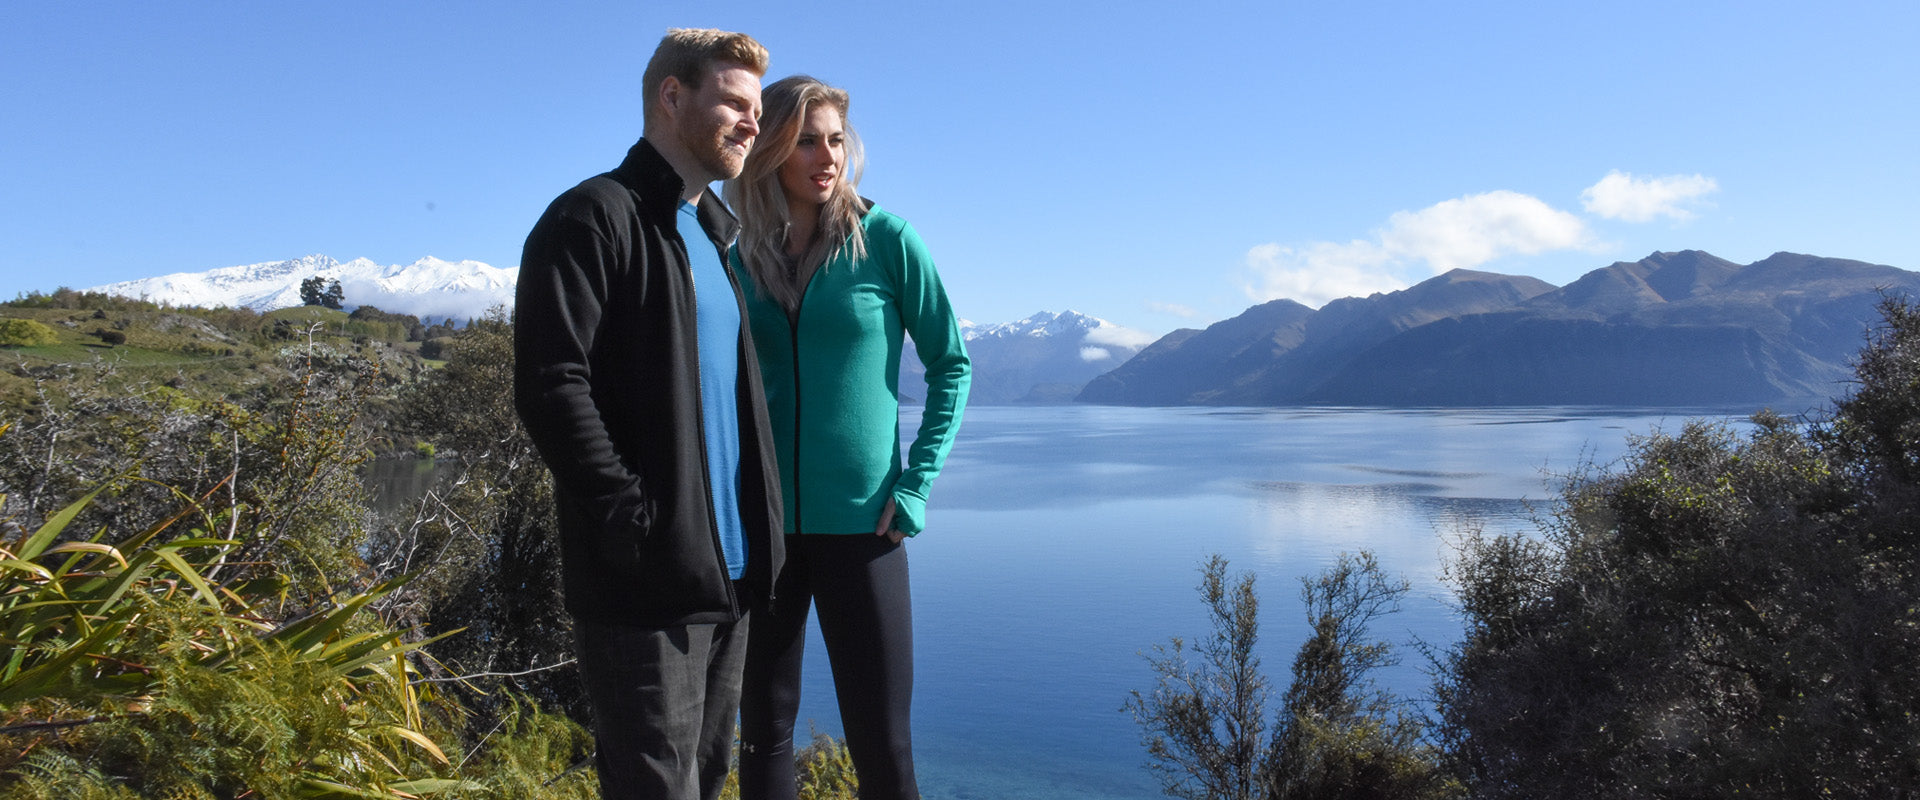 Glowing Sky - New Zealand made Merino clothing – Glowing Sky